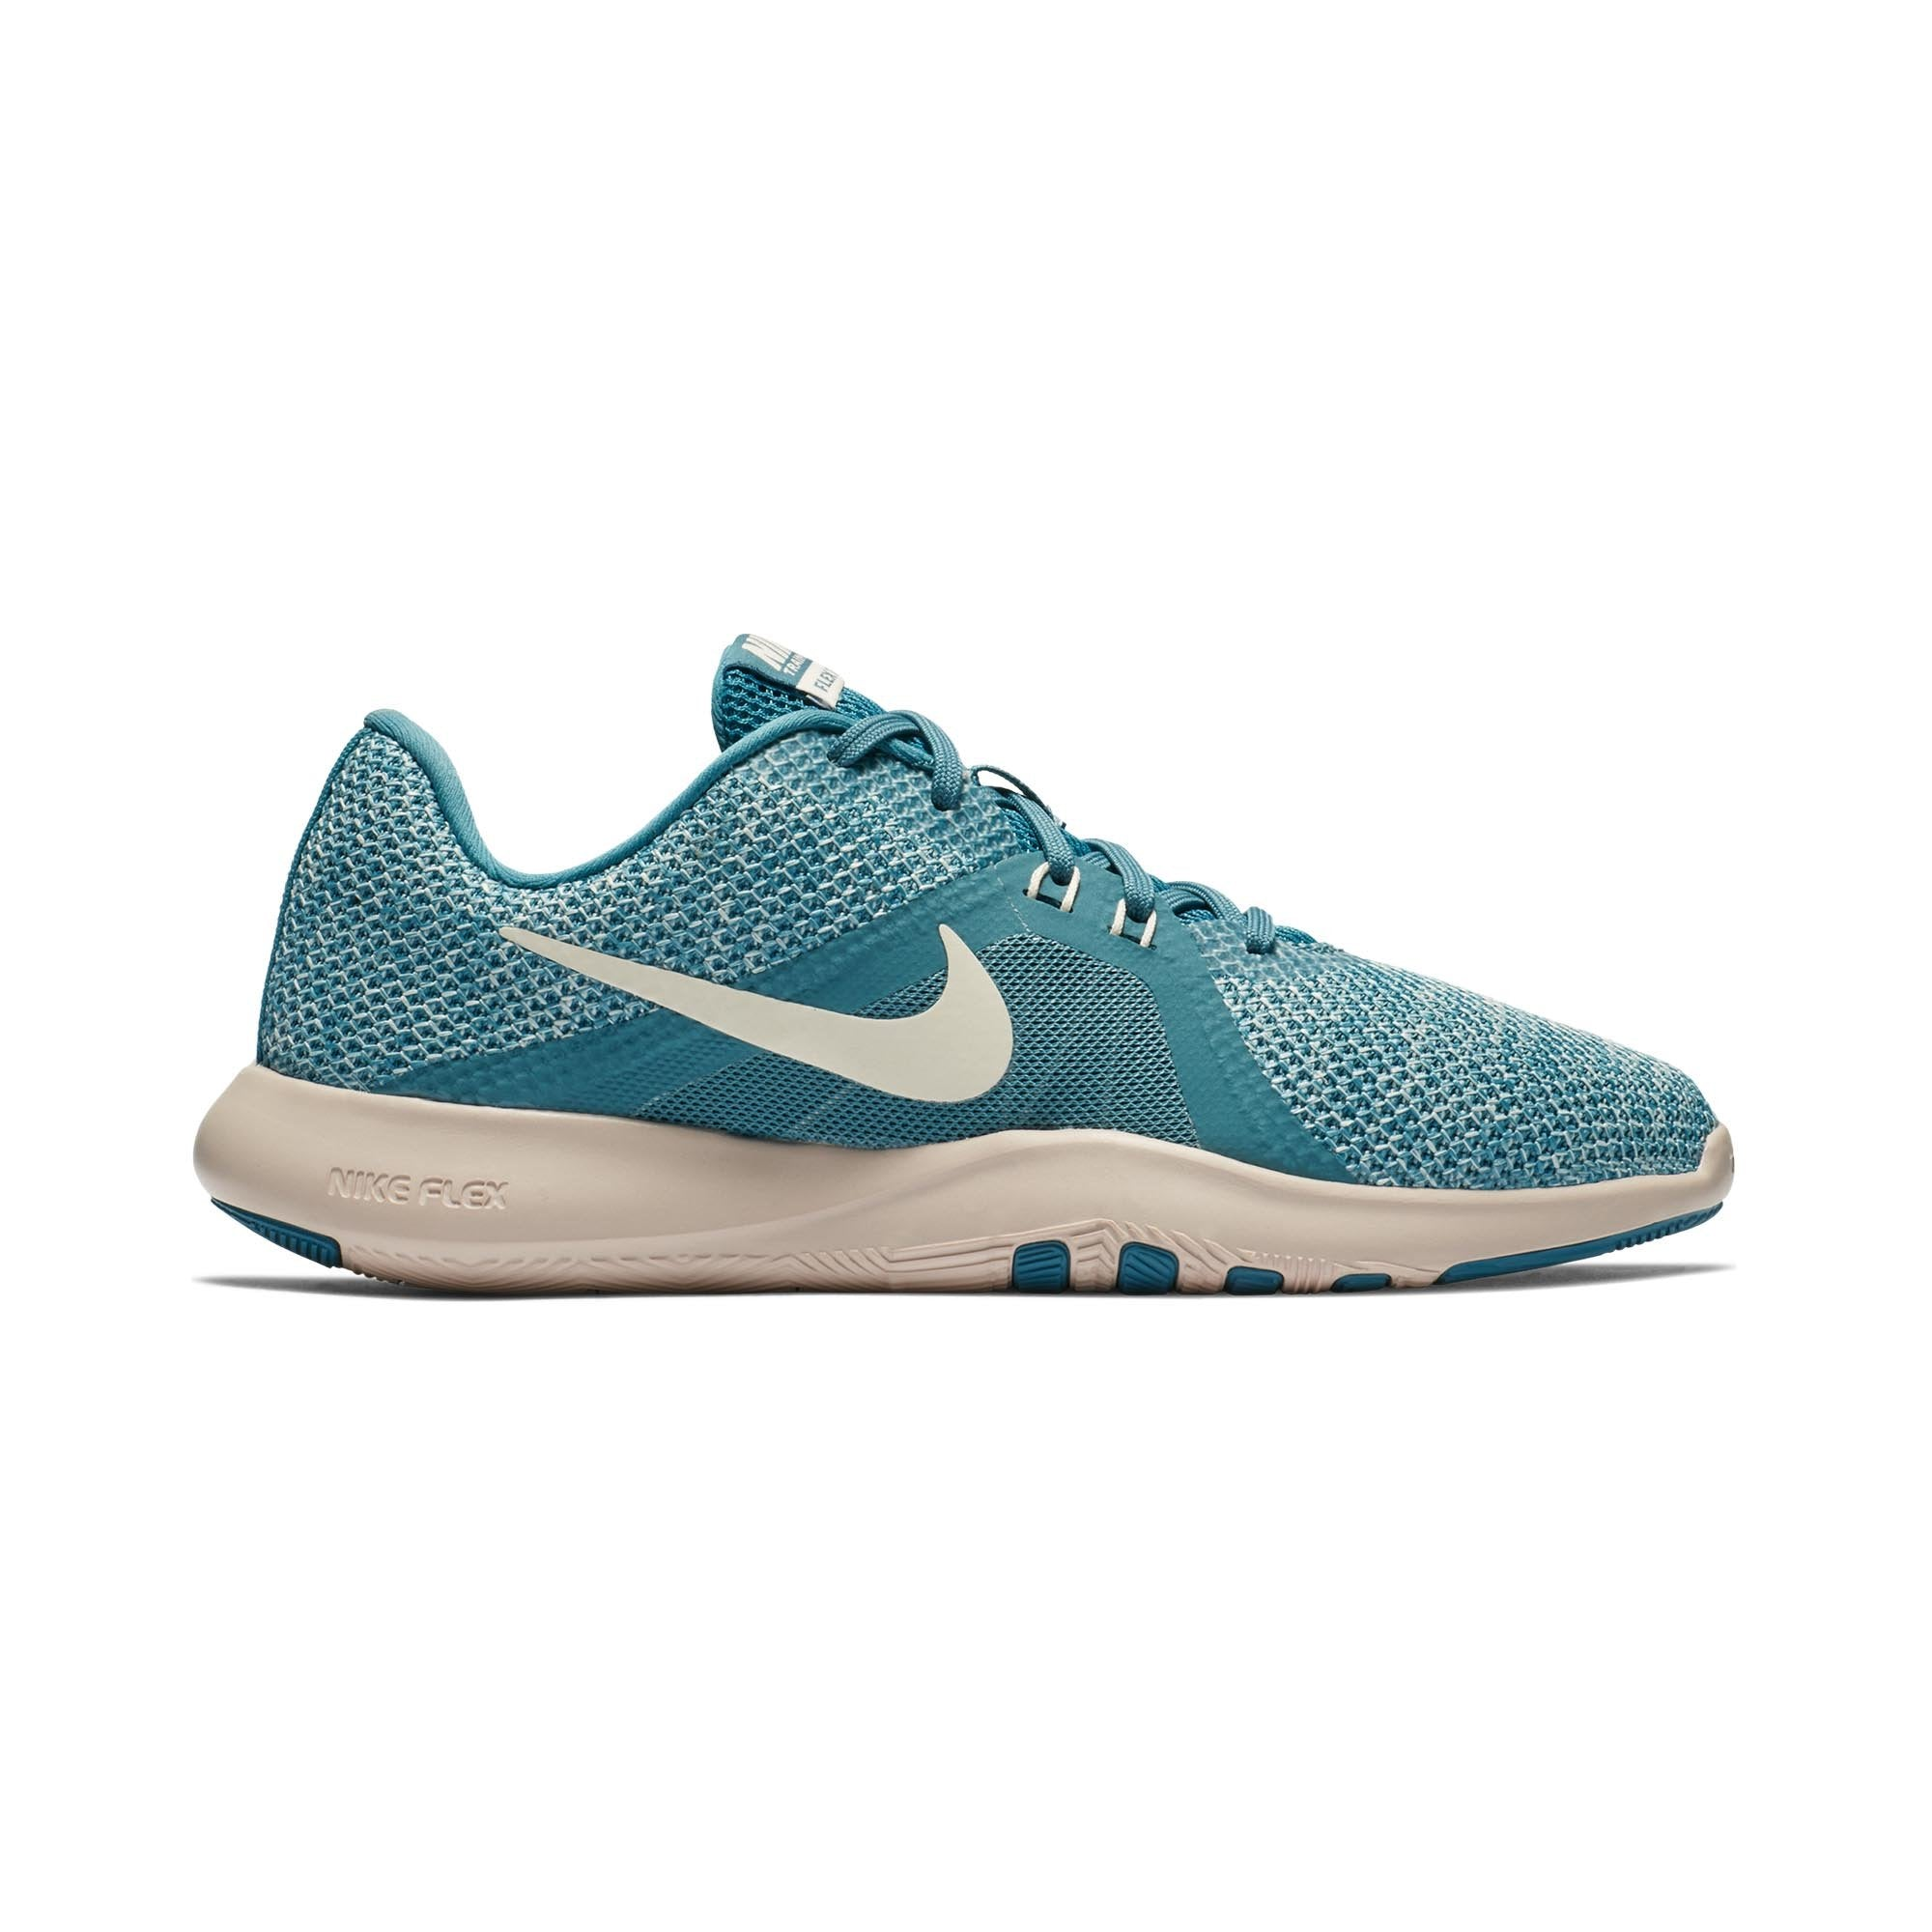 pretty nice 1a140 7ffb6 Buy NIKE Women Flex Tr 8 Training Shoes, Celestial Teal Guava Ice Light  Silver Online in Singapore   Royal Sporting House